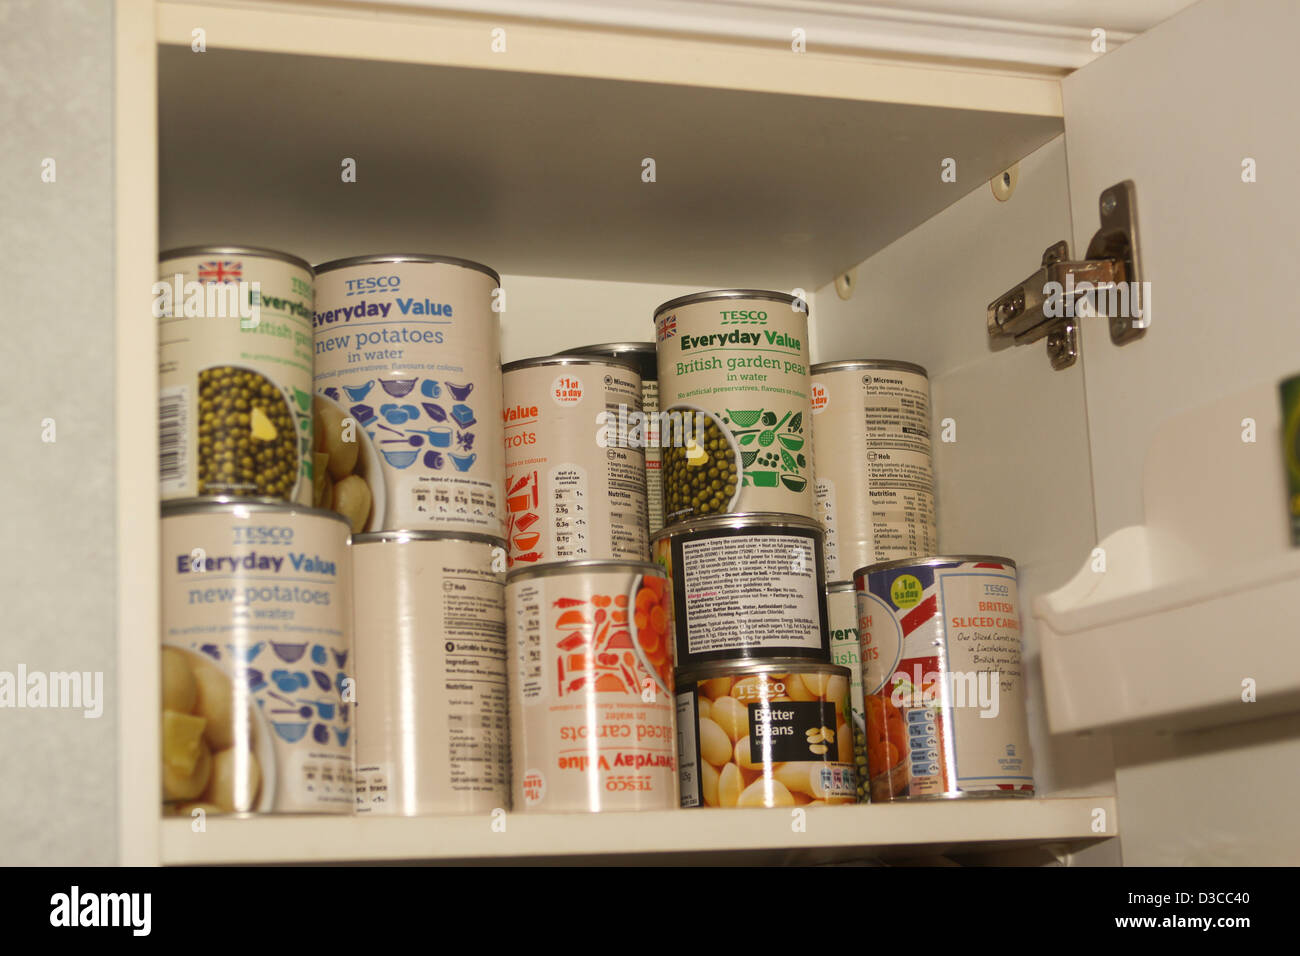 Tesco value tinned foods in kitchen cupboard - Stock Image